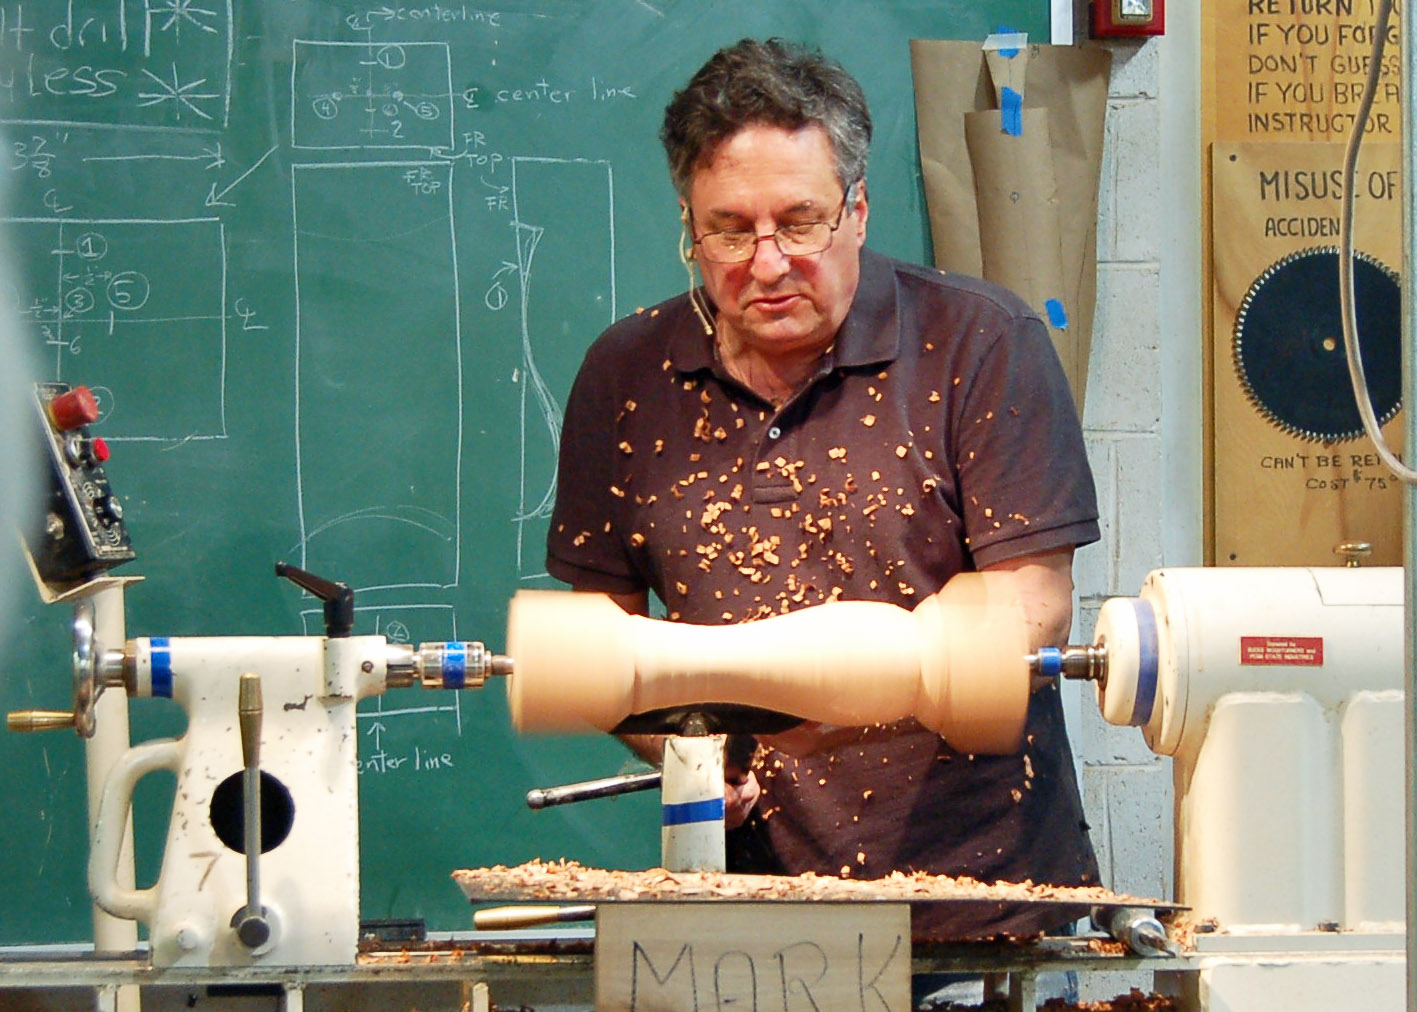 After having made the arch cut, Mark uses the roughing gouge to remove wood fast.